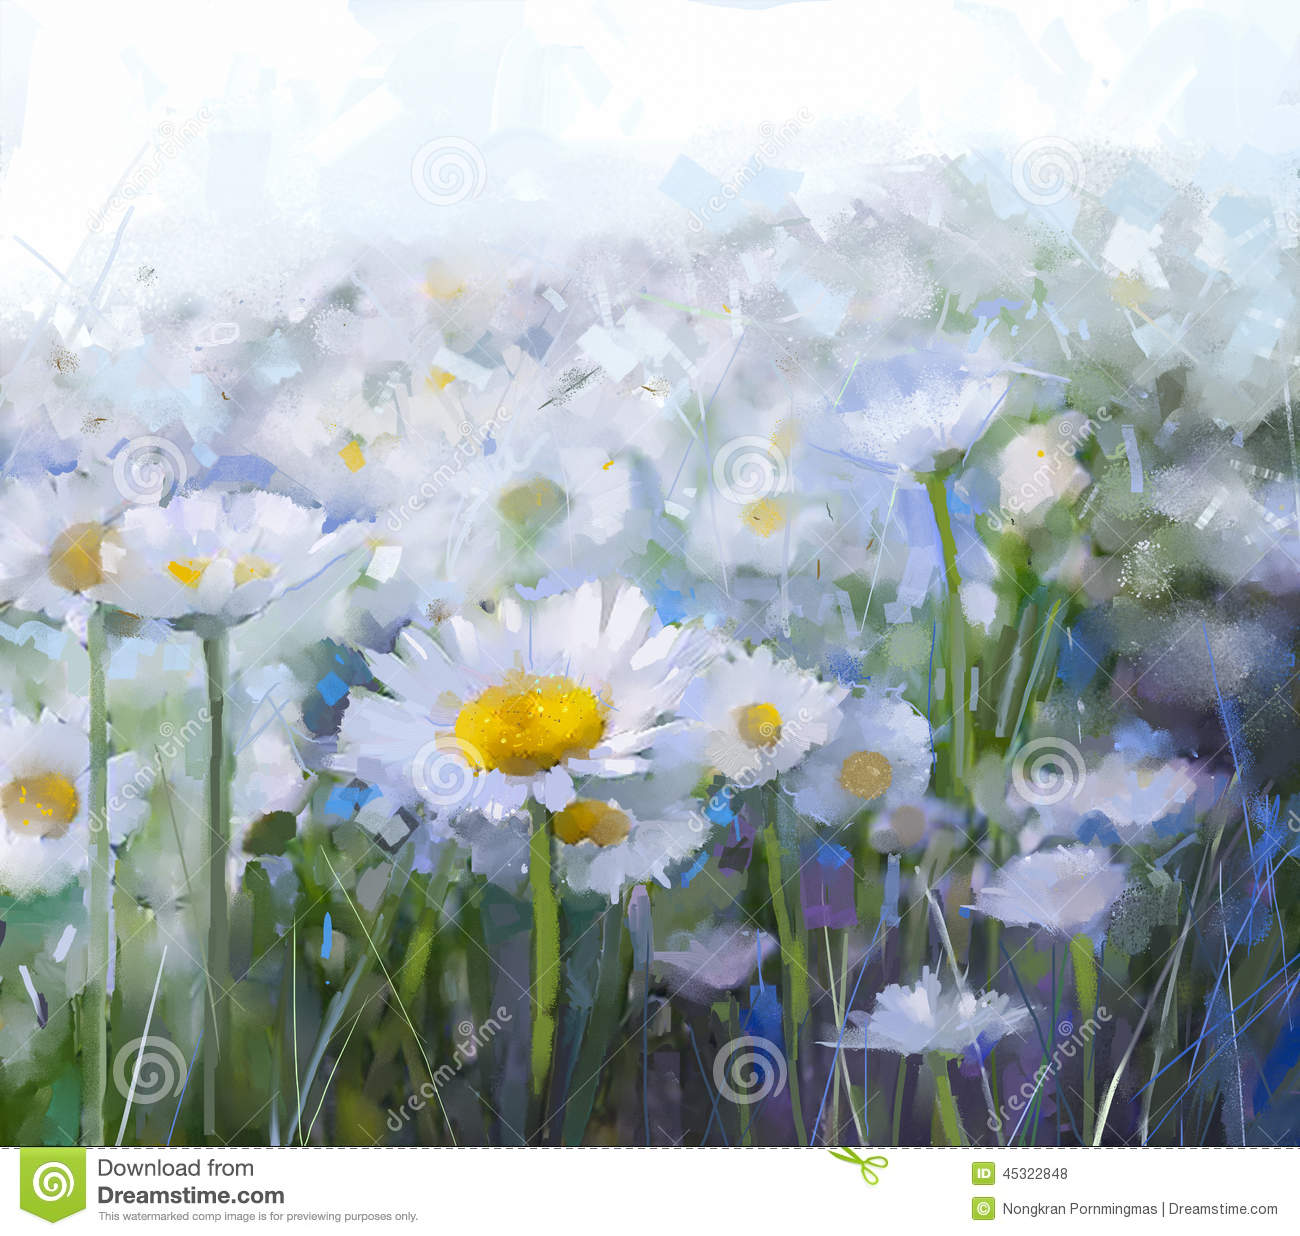 Oil painting white daisy flower in filed stock illustration oil painting white daisy flower in filed mightylinksfo